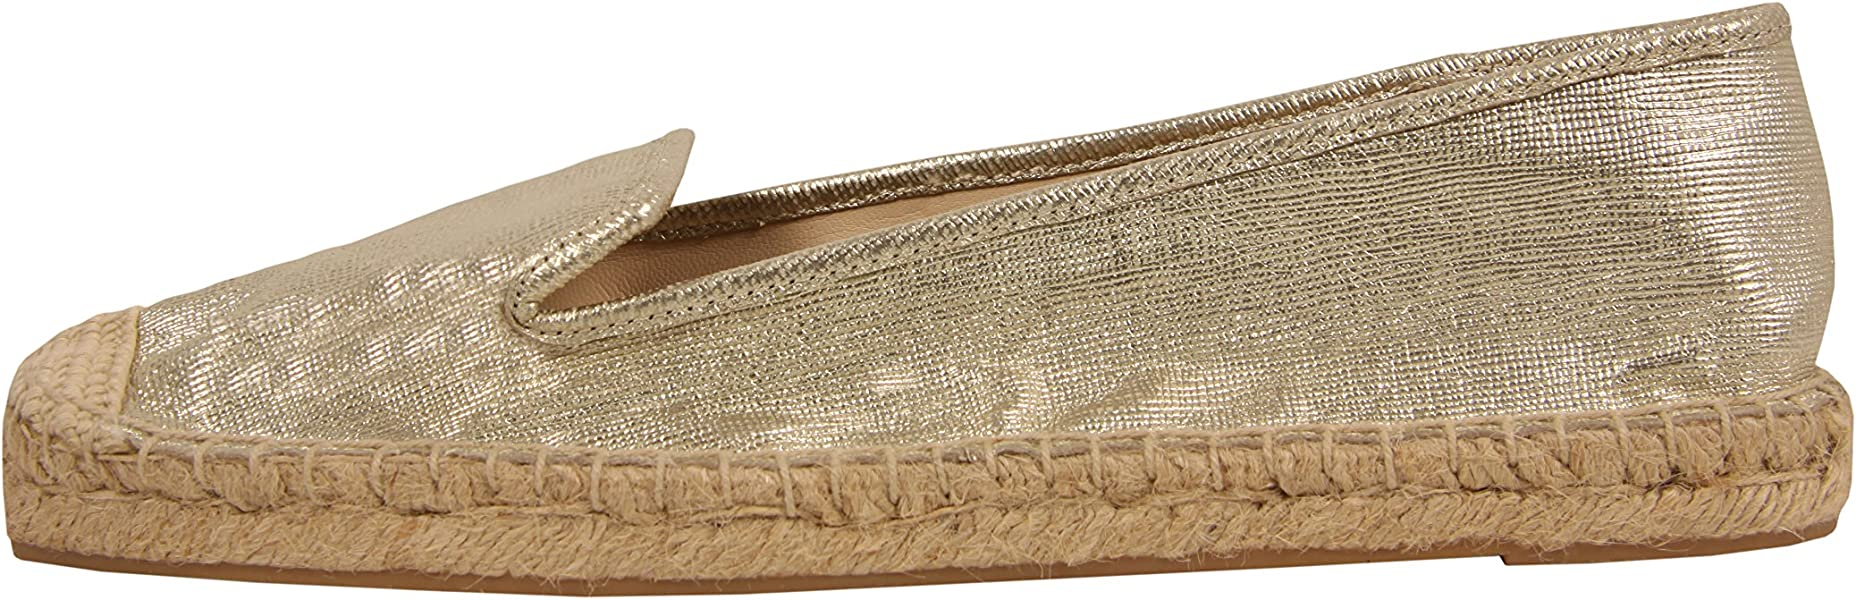 Nine West Nwbeachinit - Alpargatas para mujer, color dorado, talla 40 EUR (90 USA)